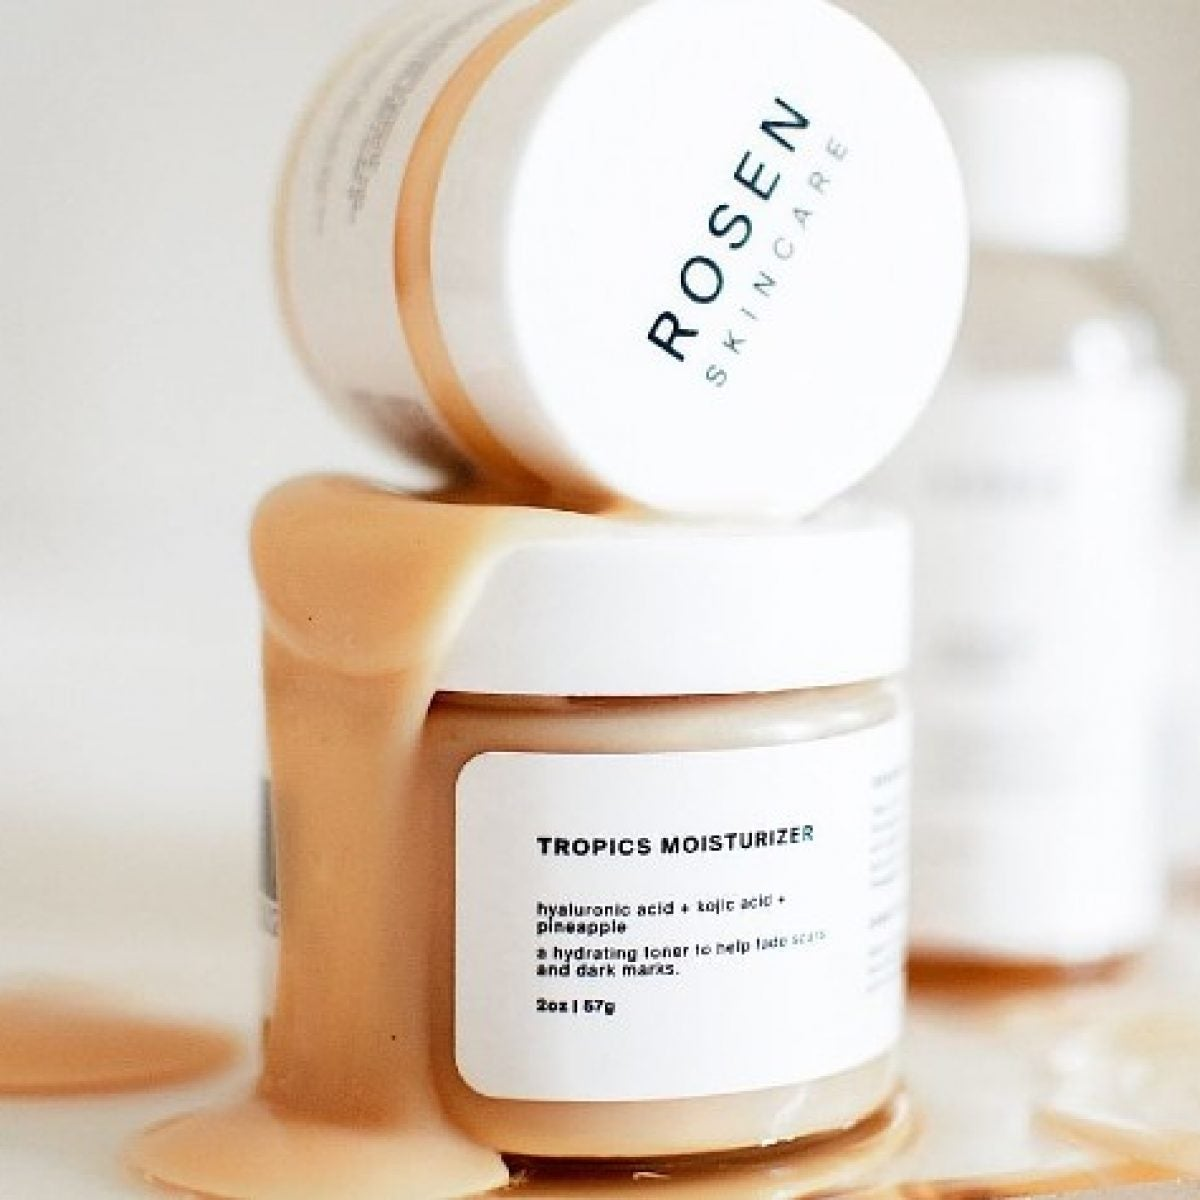 This Black-Owned Skin Care Brand Went From A Dorm Room To Urban Outfitters